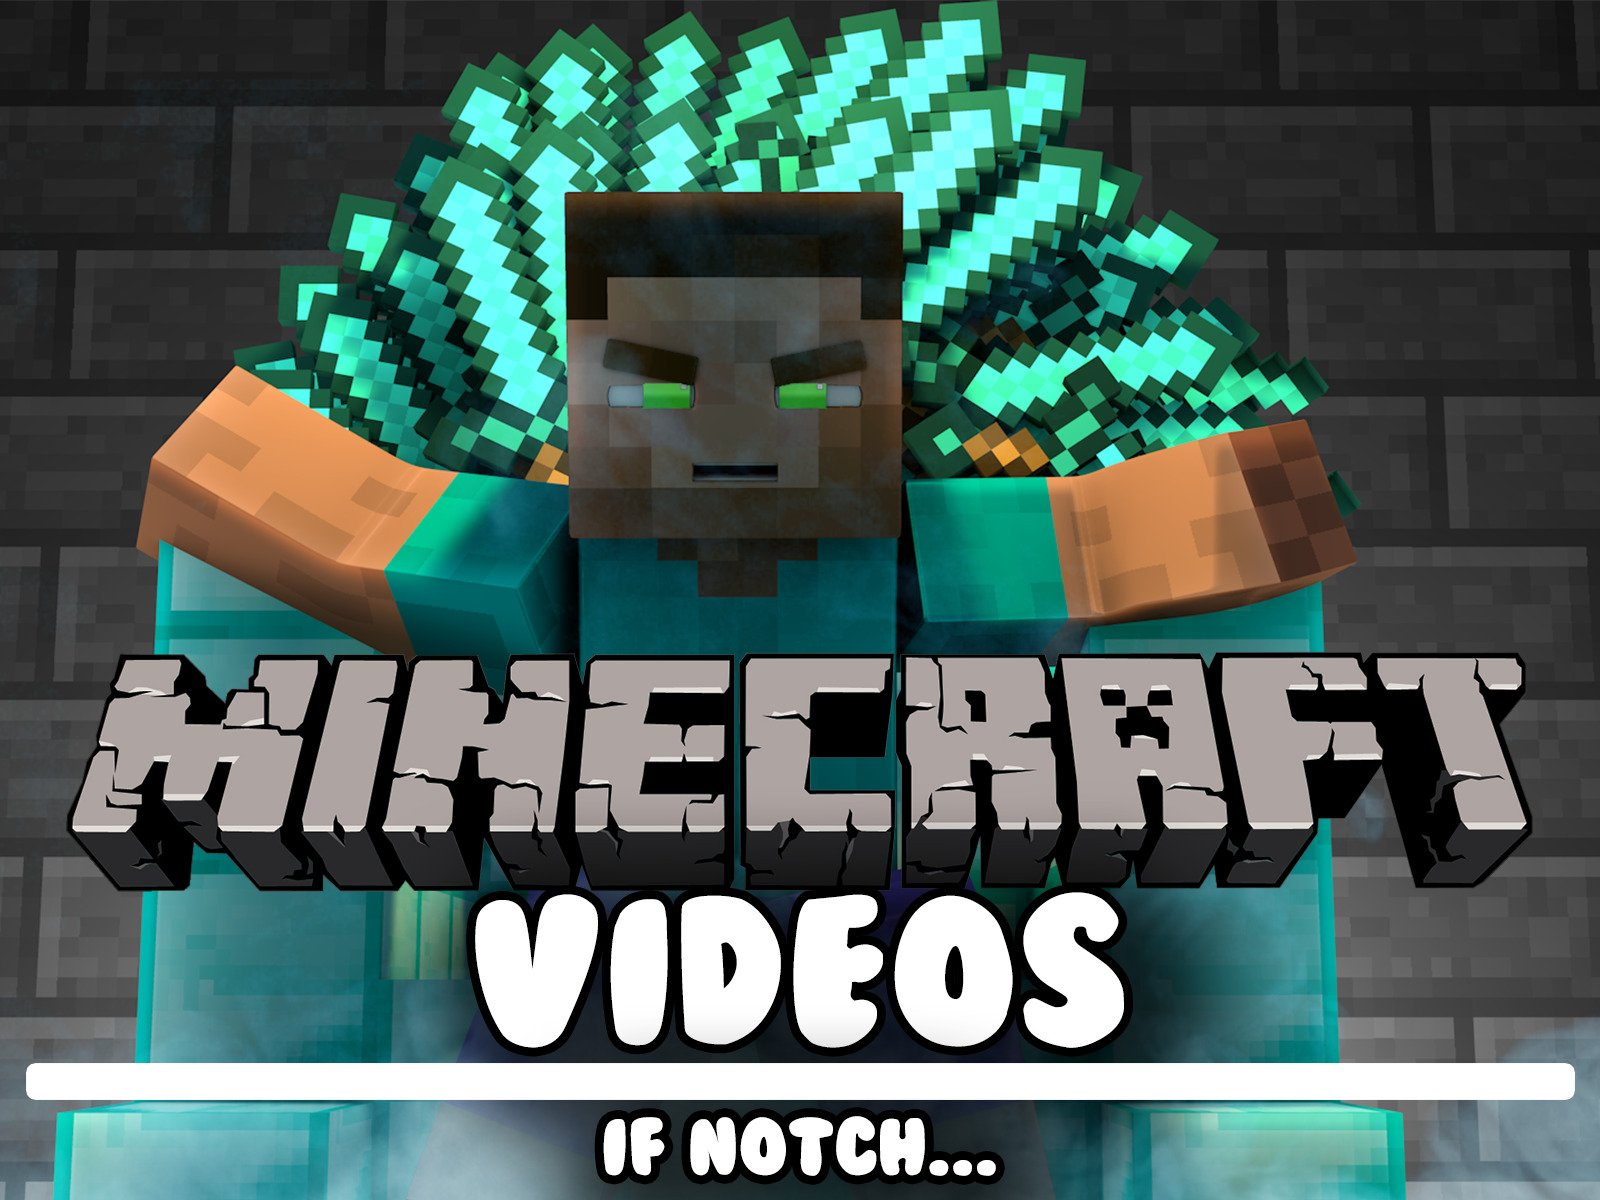 If Notch... - Season 1